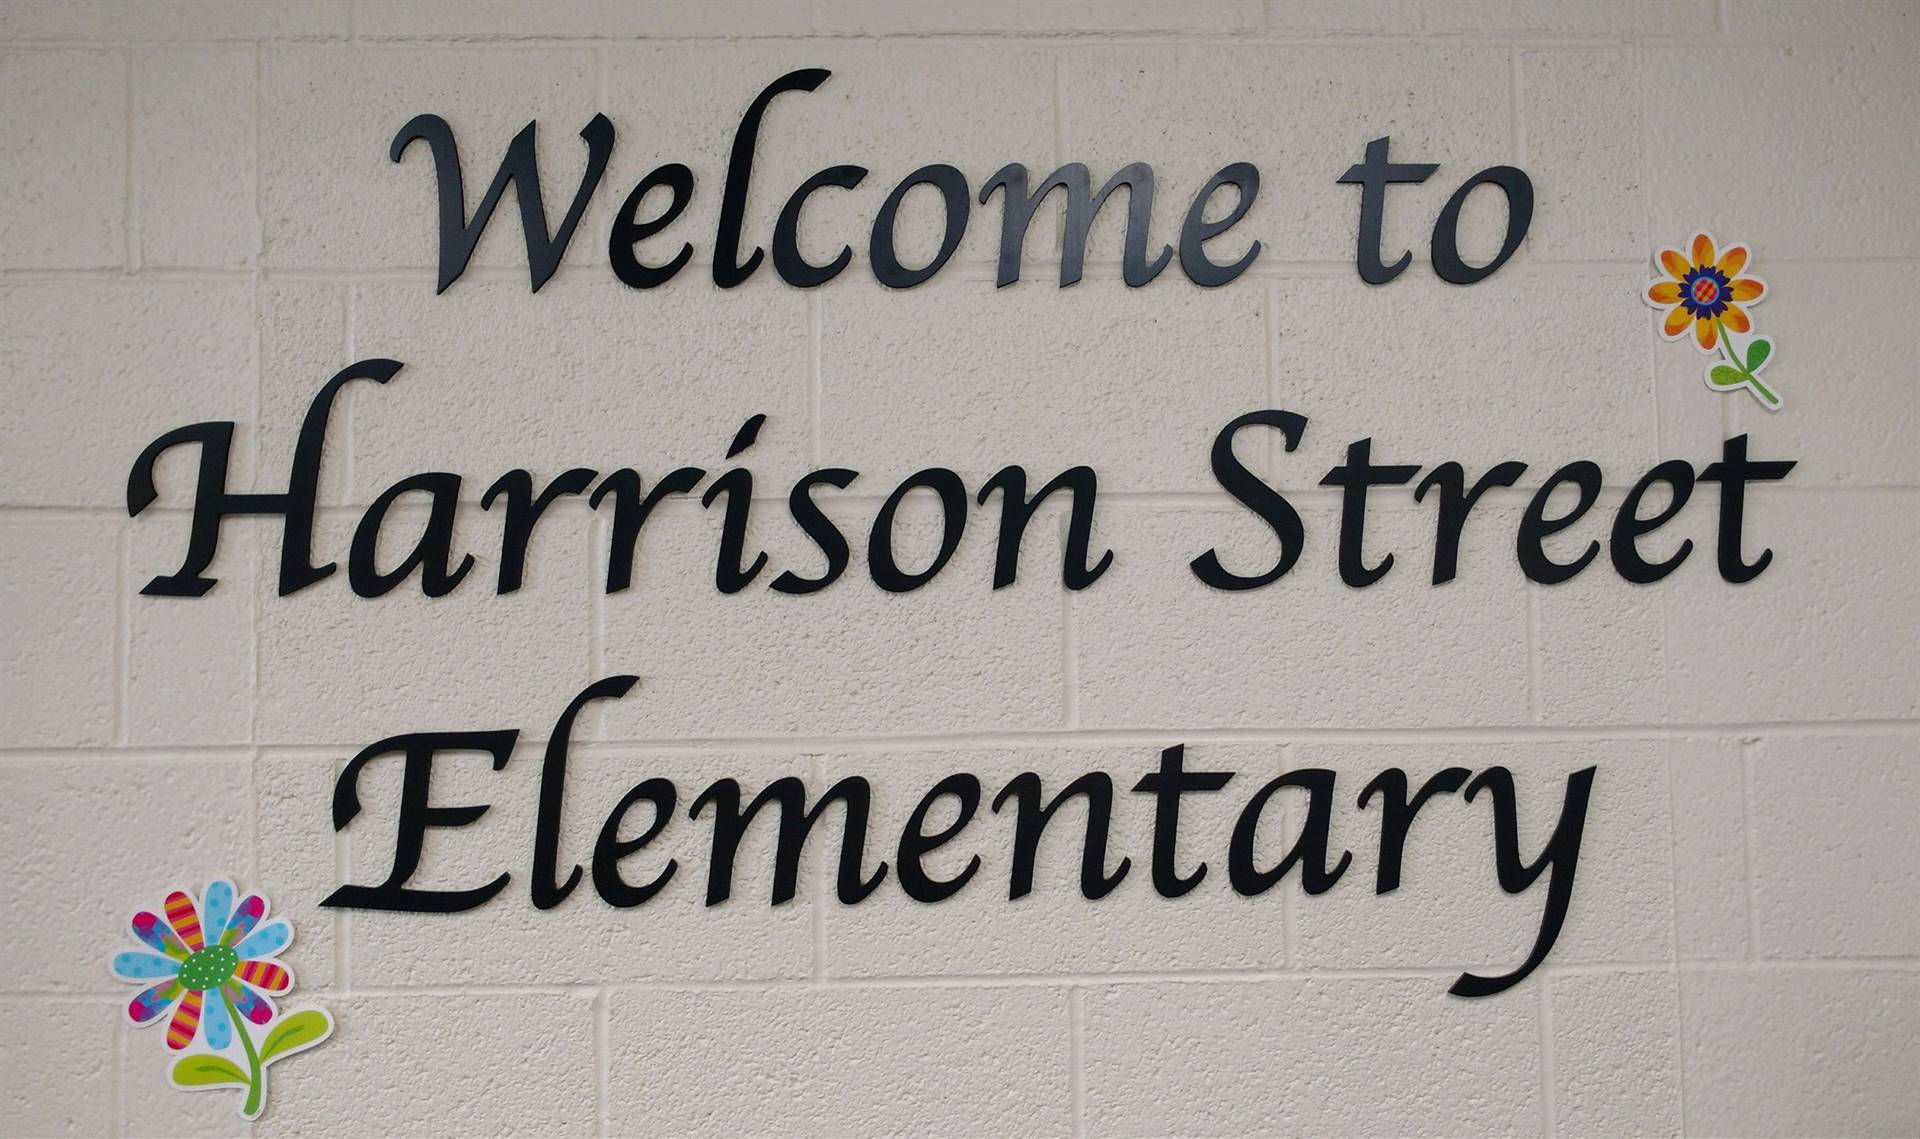 Welcome to Harrison Street